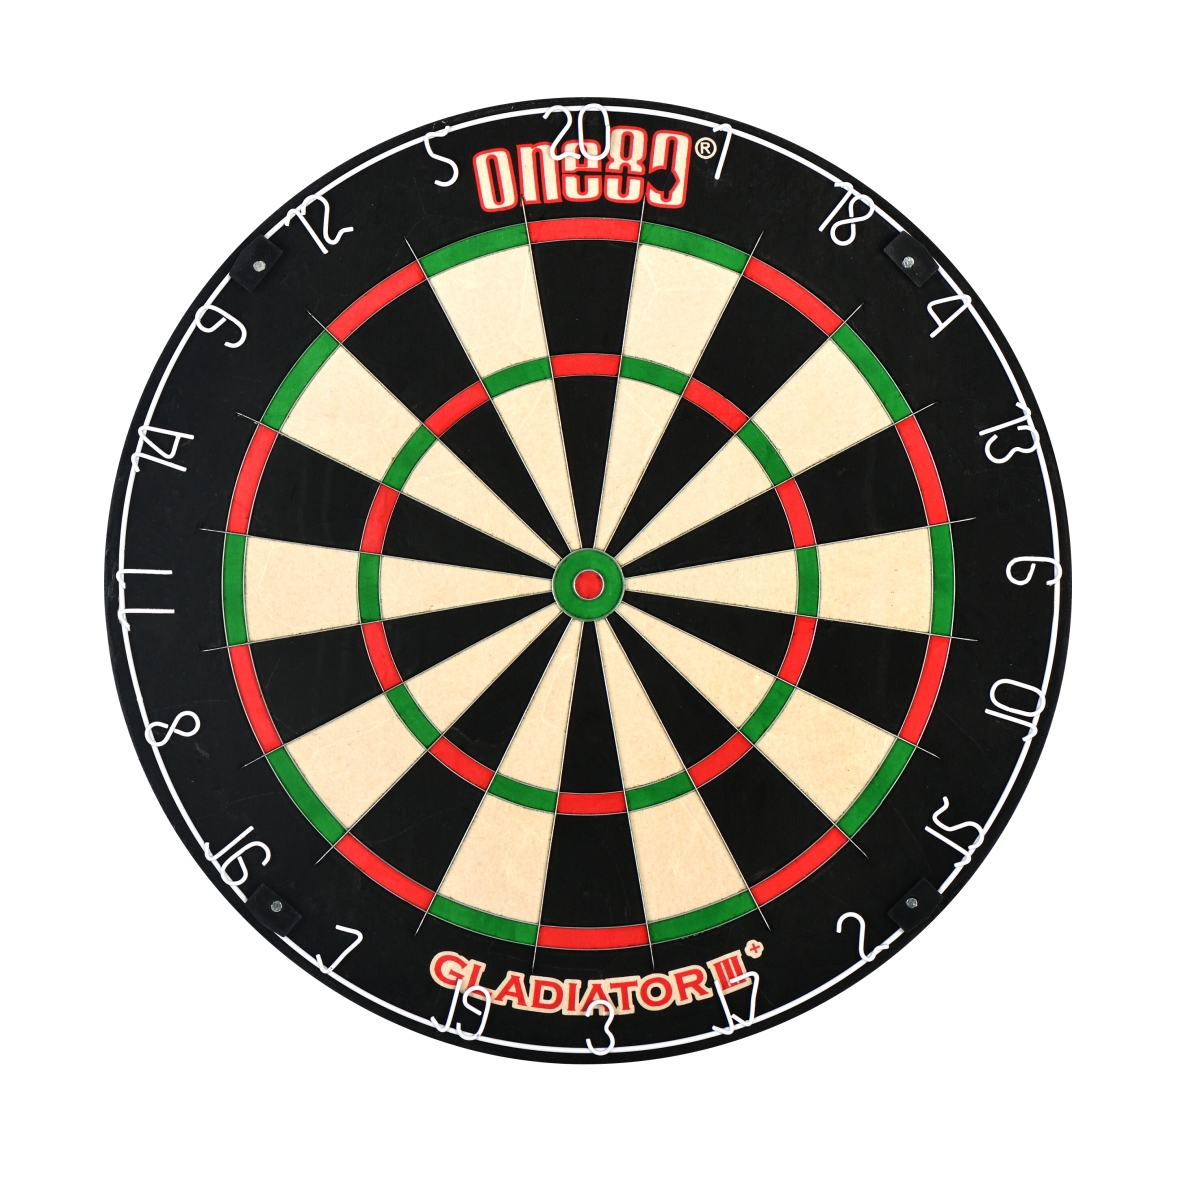 One80 Gladiator 3+ Dartboard von One80